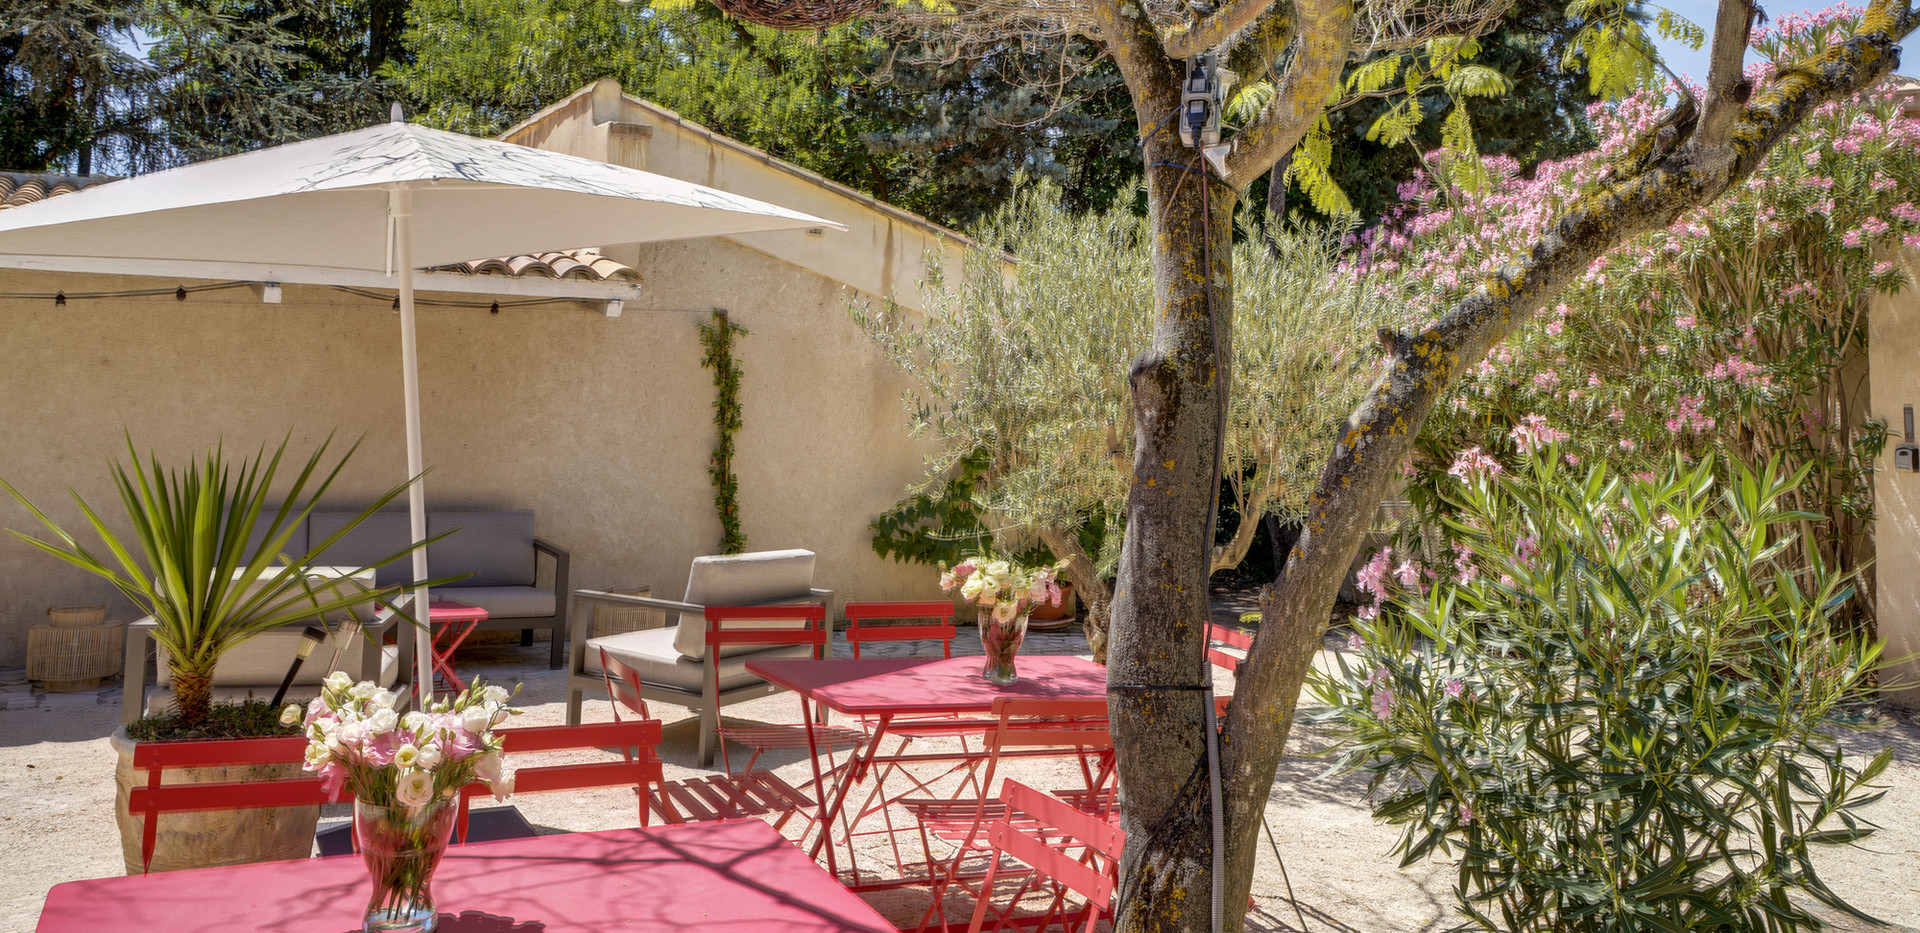 The patio of Mas Saint-Gens, holiday area in South of France